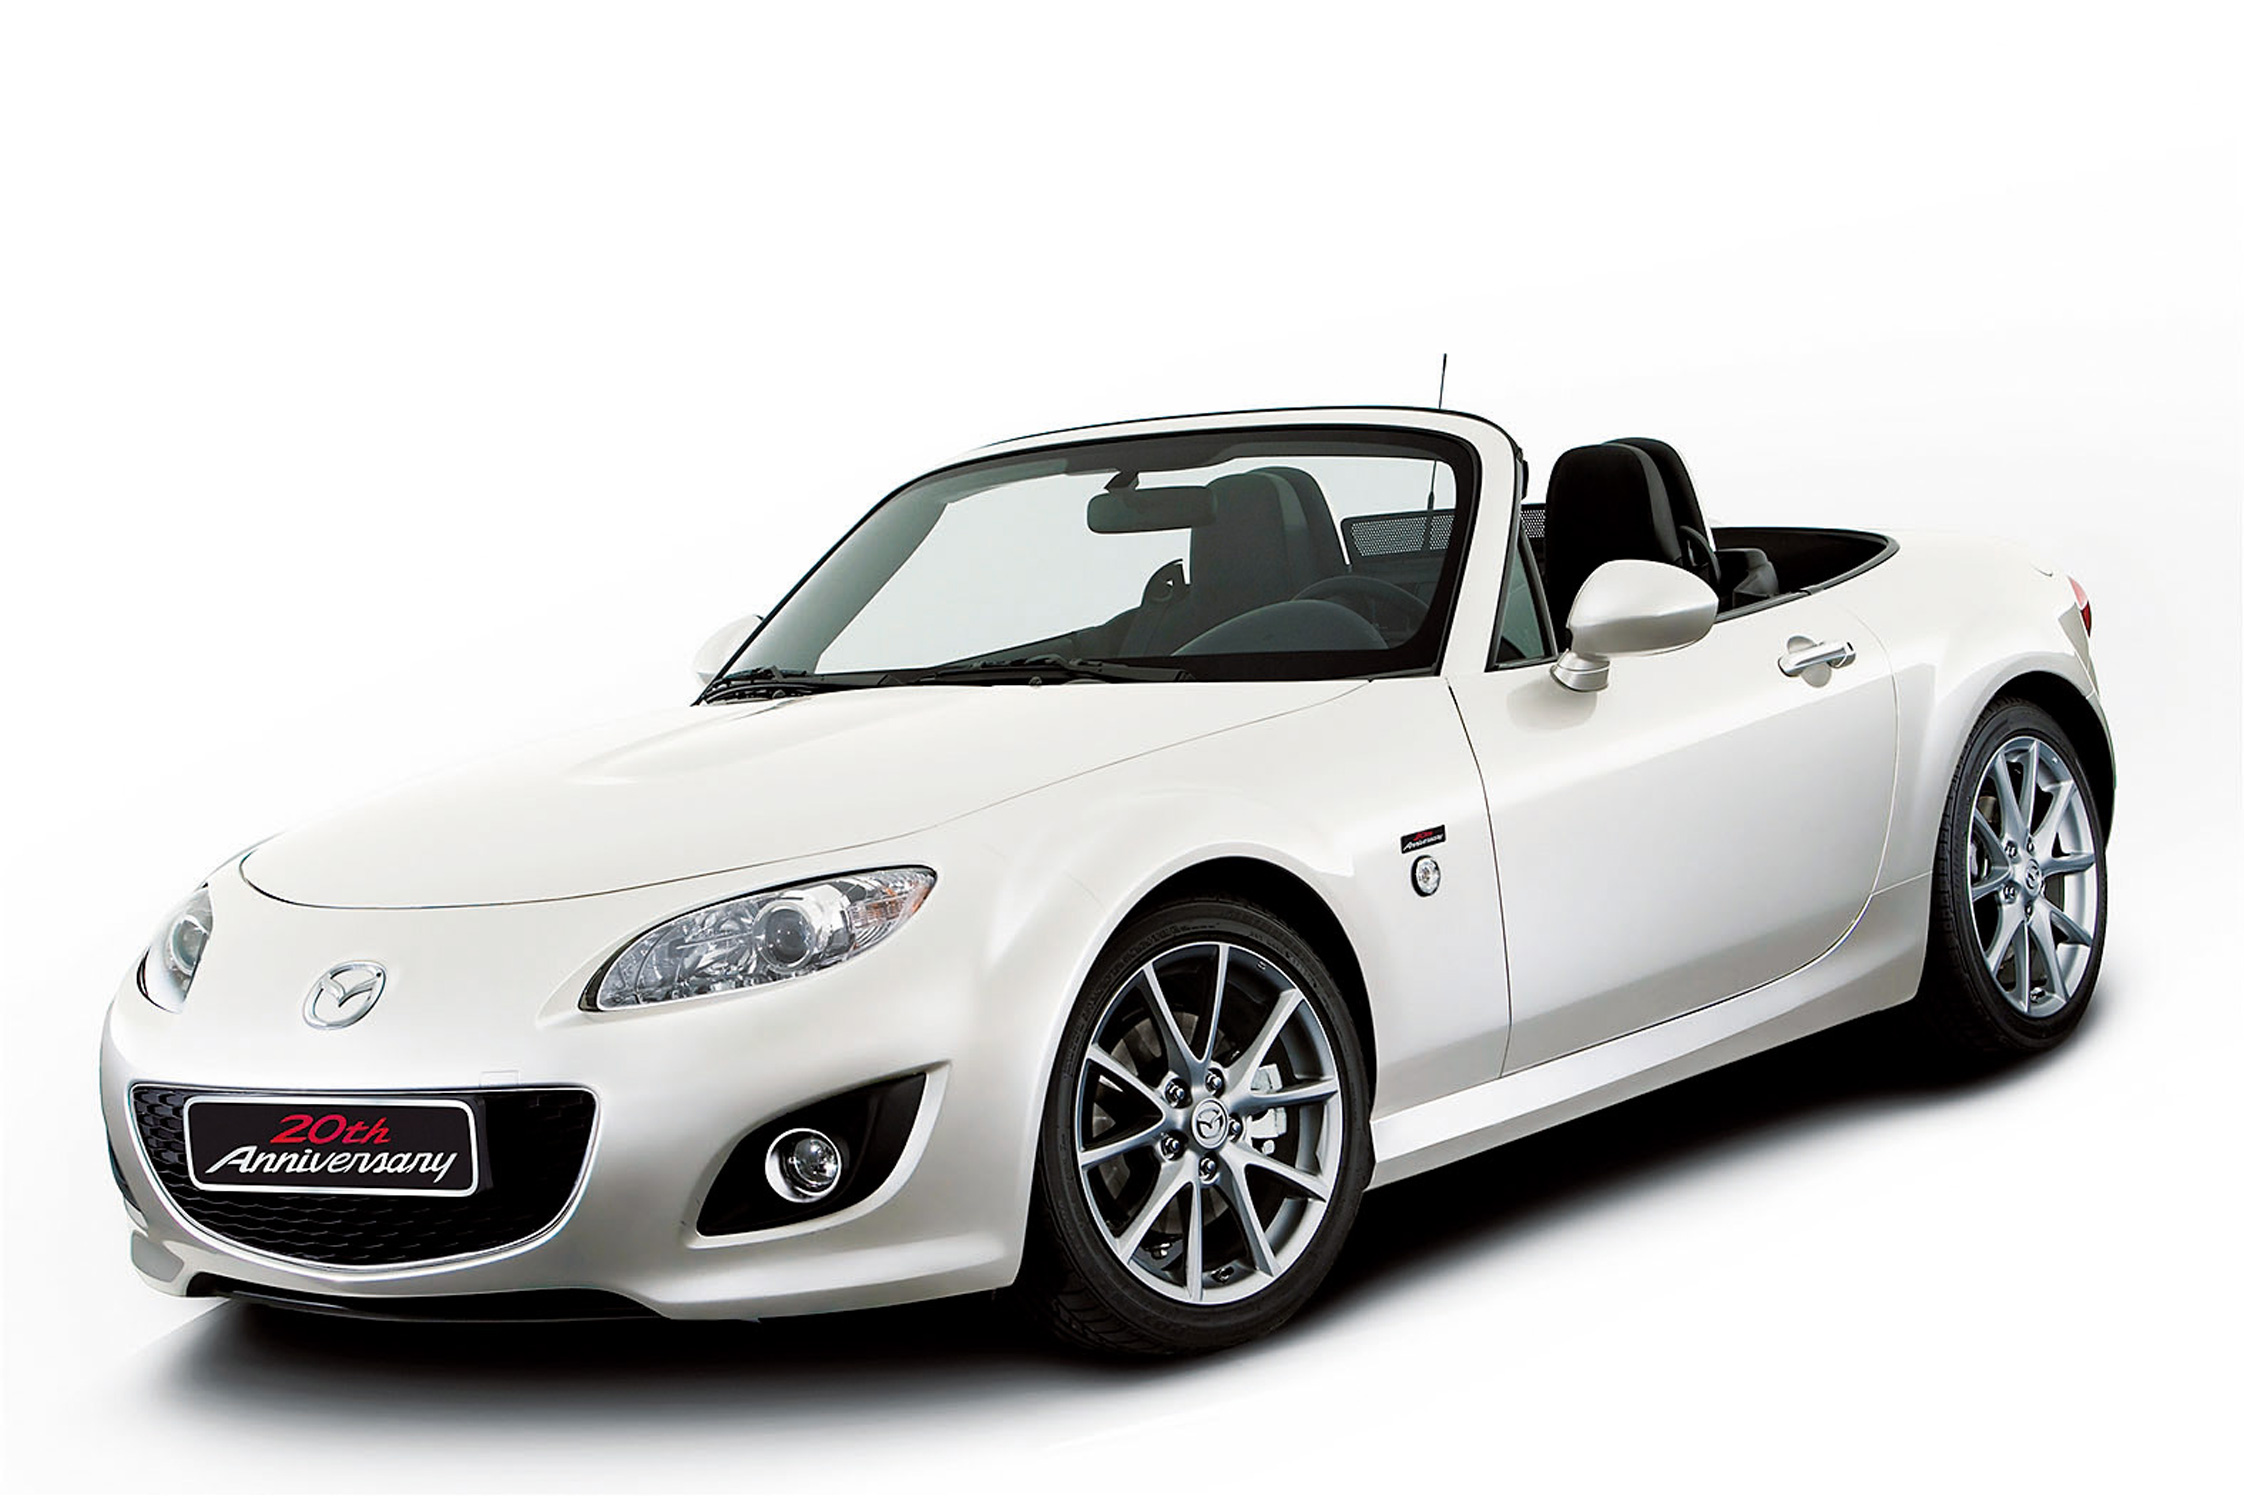 essai mazda mx 5 20th anniversary nc motorlegend. Black Bedroom Furniture Sets. Home Design Ideas